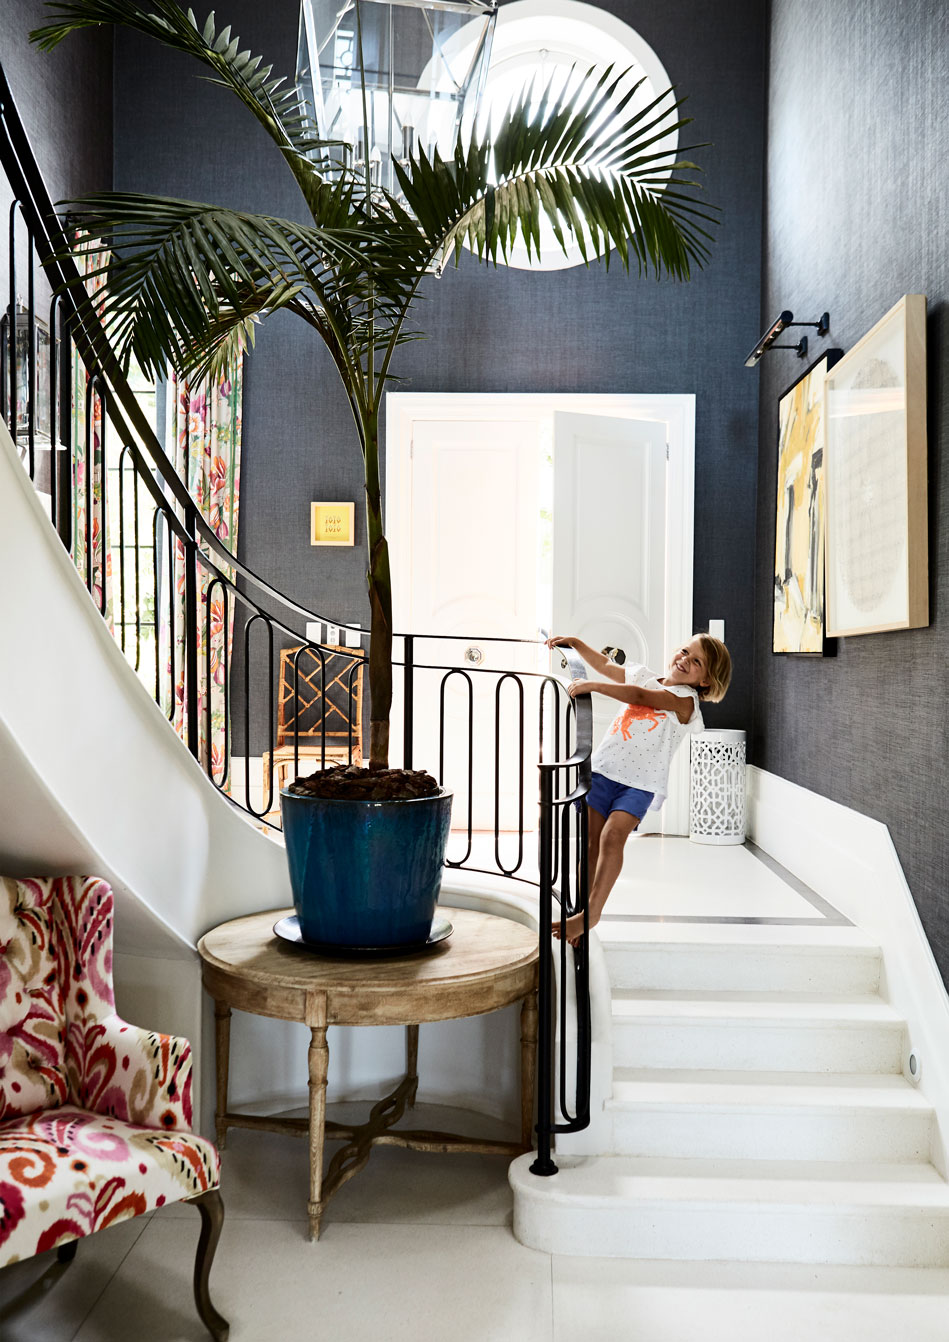 Homeowner and interior designer Kim Stephen‮!&‬s daughter Anna at play in the elegant entrance hall and stairwell‭. ‬Key decor elements here include a textured grey wallpaper‭.‬